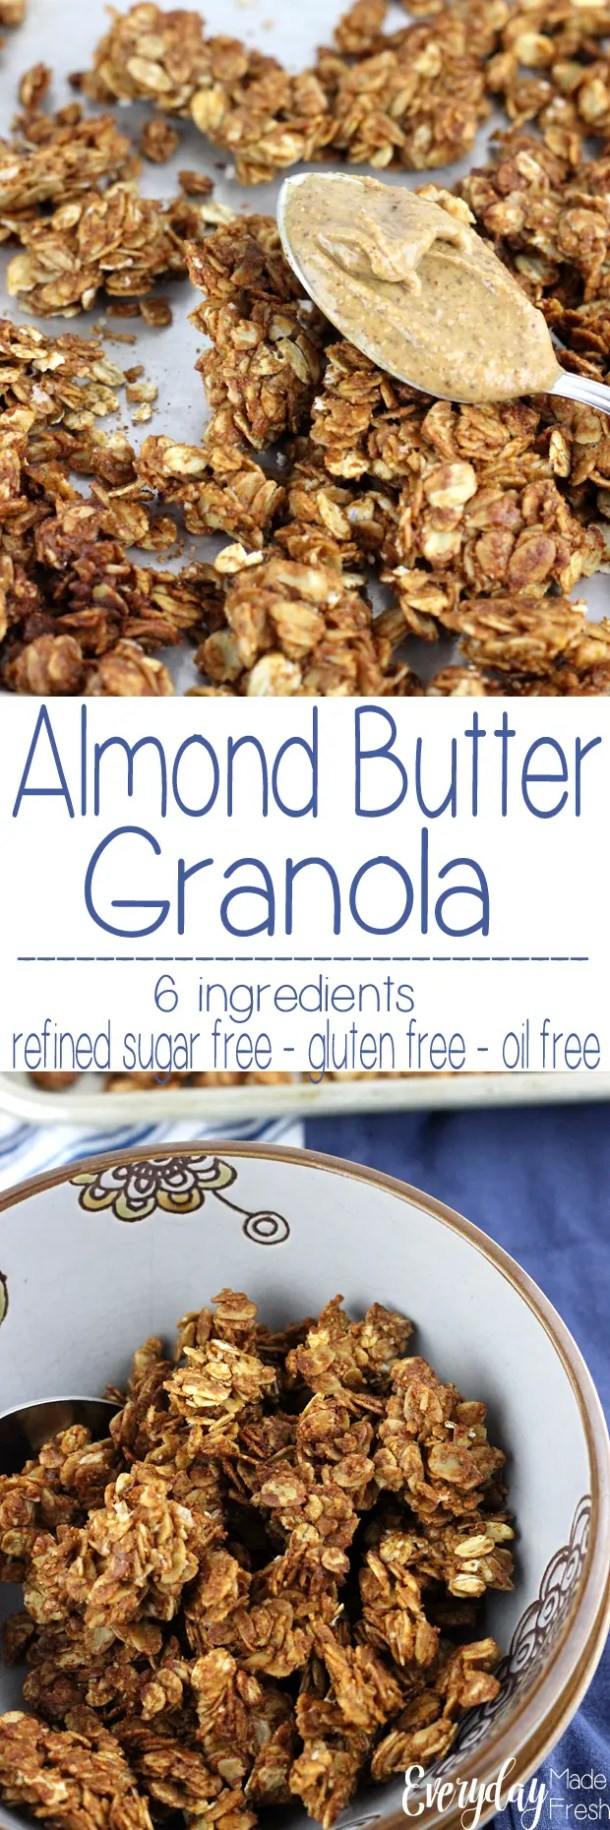 You only need 6 ingredients for this Simple Granola Recipe for Almond Butter Granola. It's ready in 30 minutes - plus it's gluten free, refined sugar free, and oil free! | EverydayMadeFresh.com